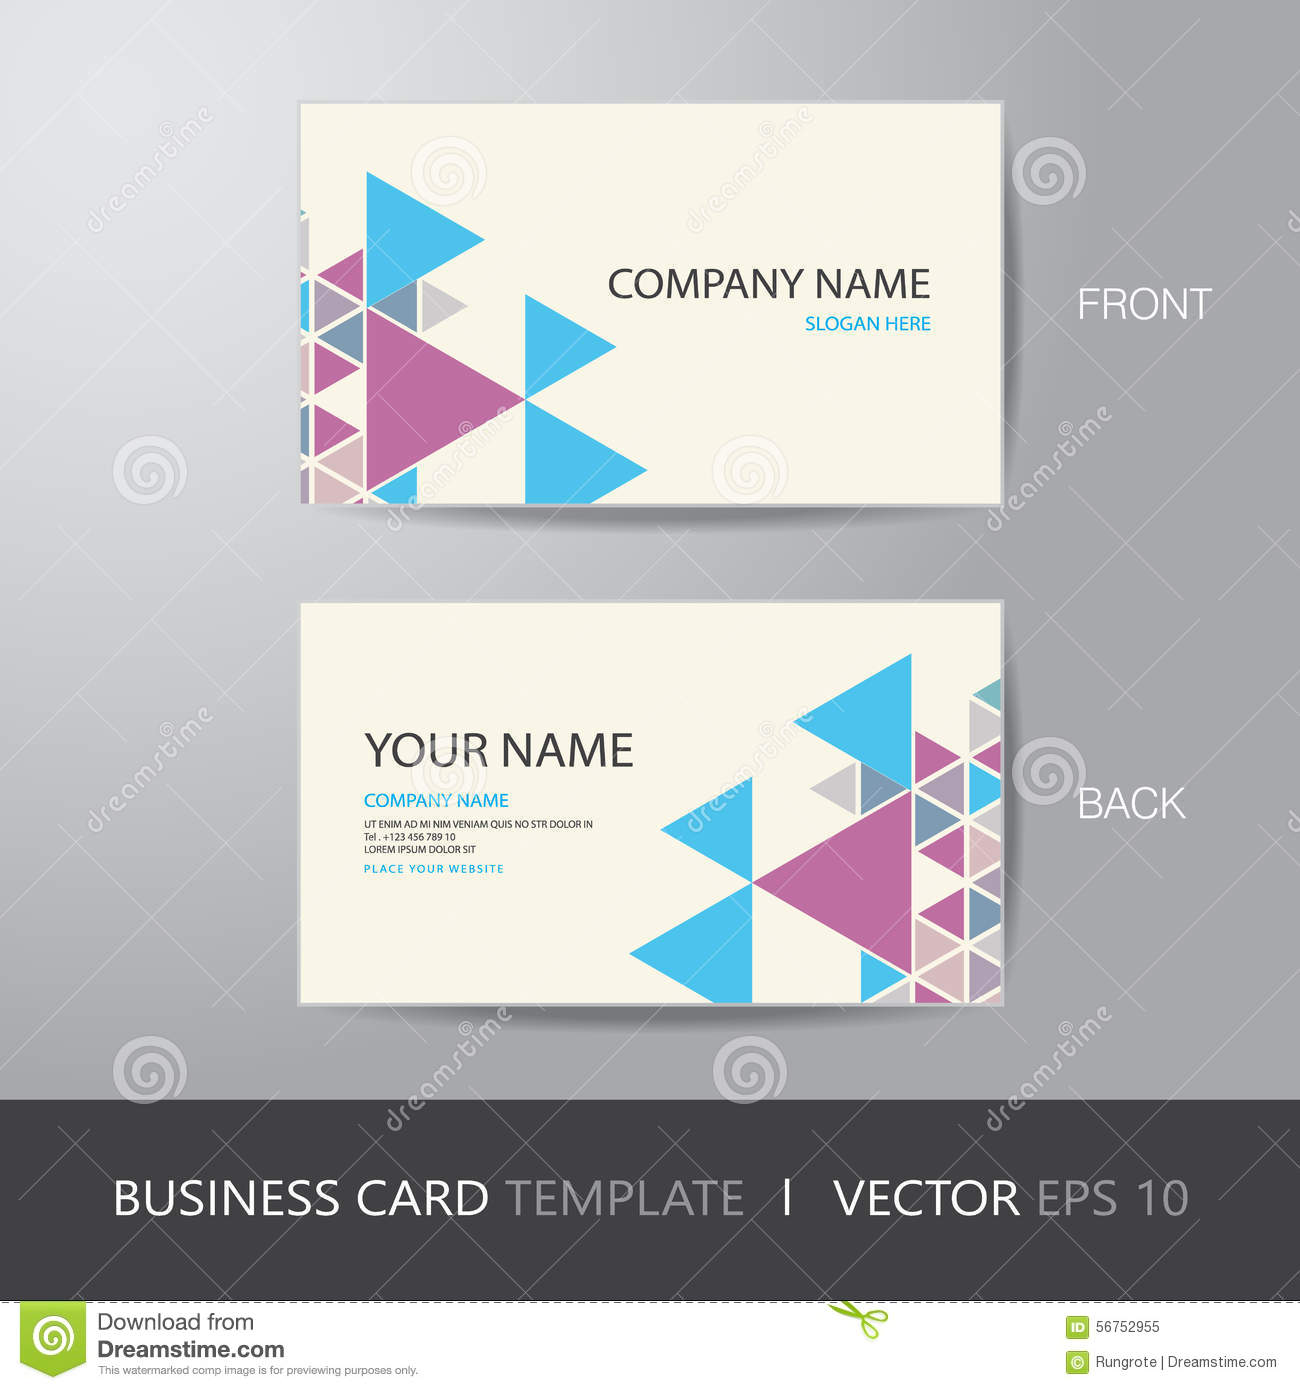 Business card triangle abstract background design layout templat business card triangle abstract background design layout templat magicingreecefo Choice Image